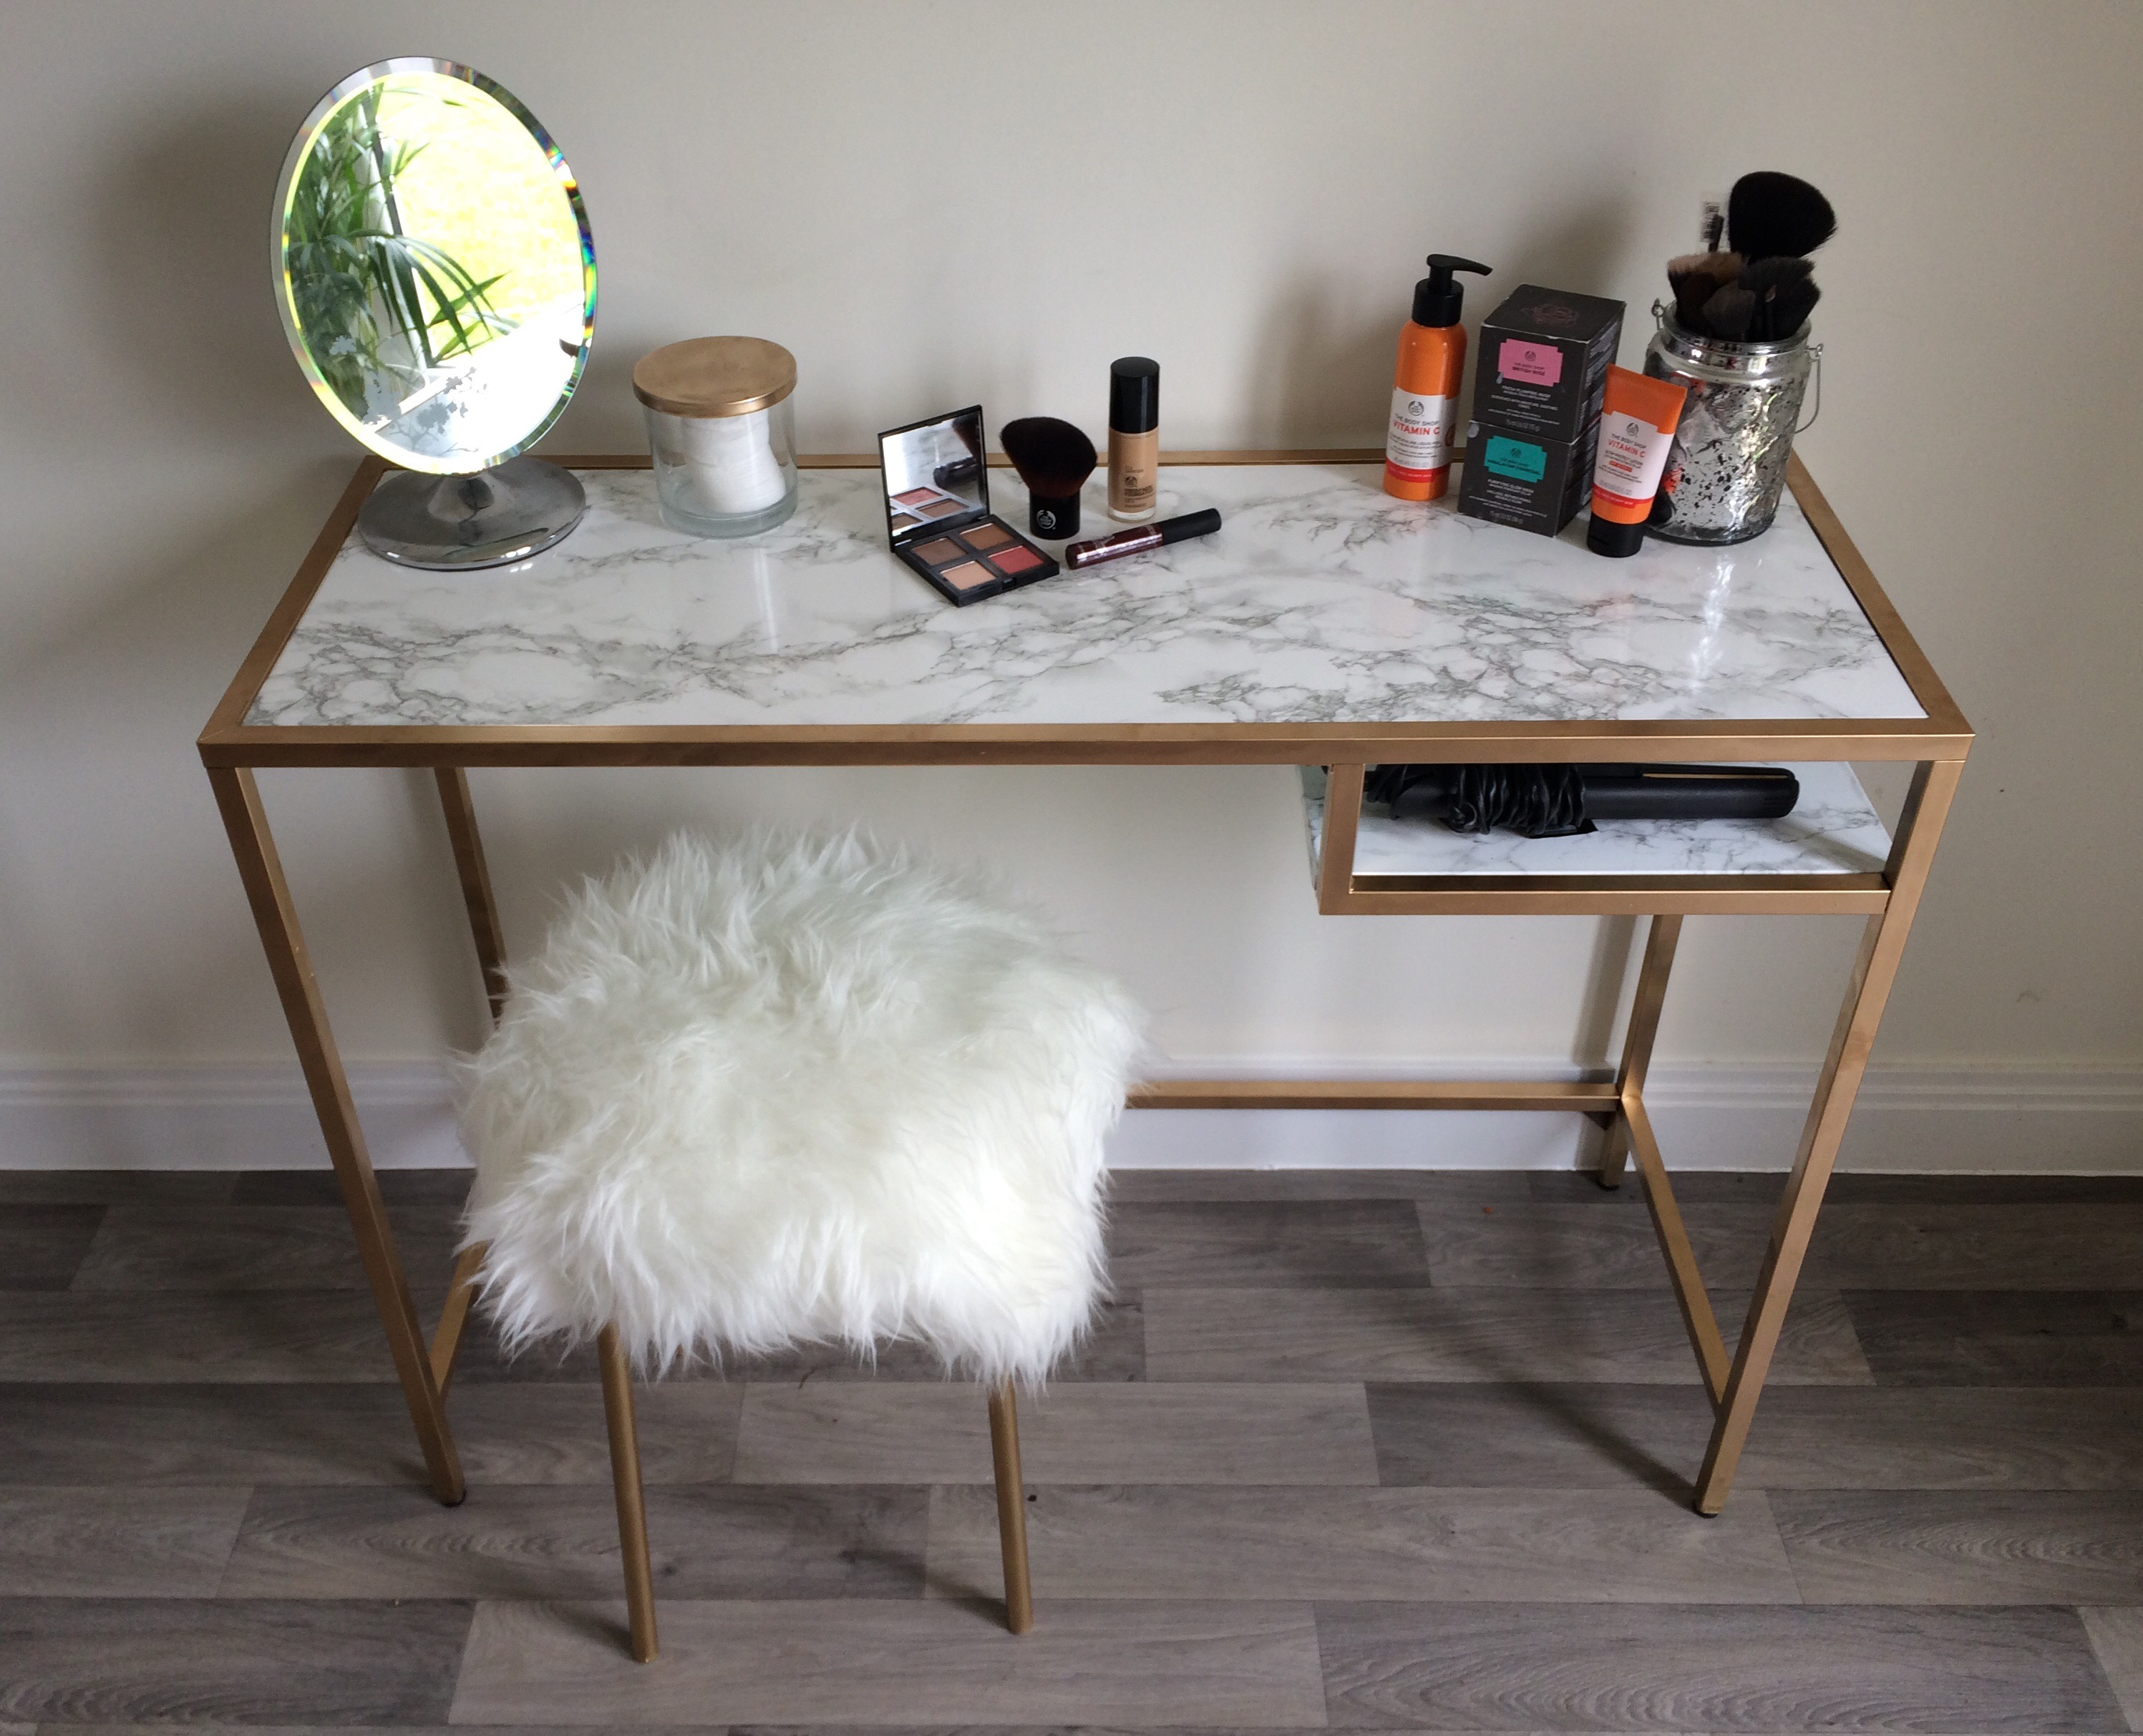 Ikea make up table hack